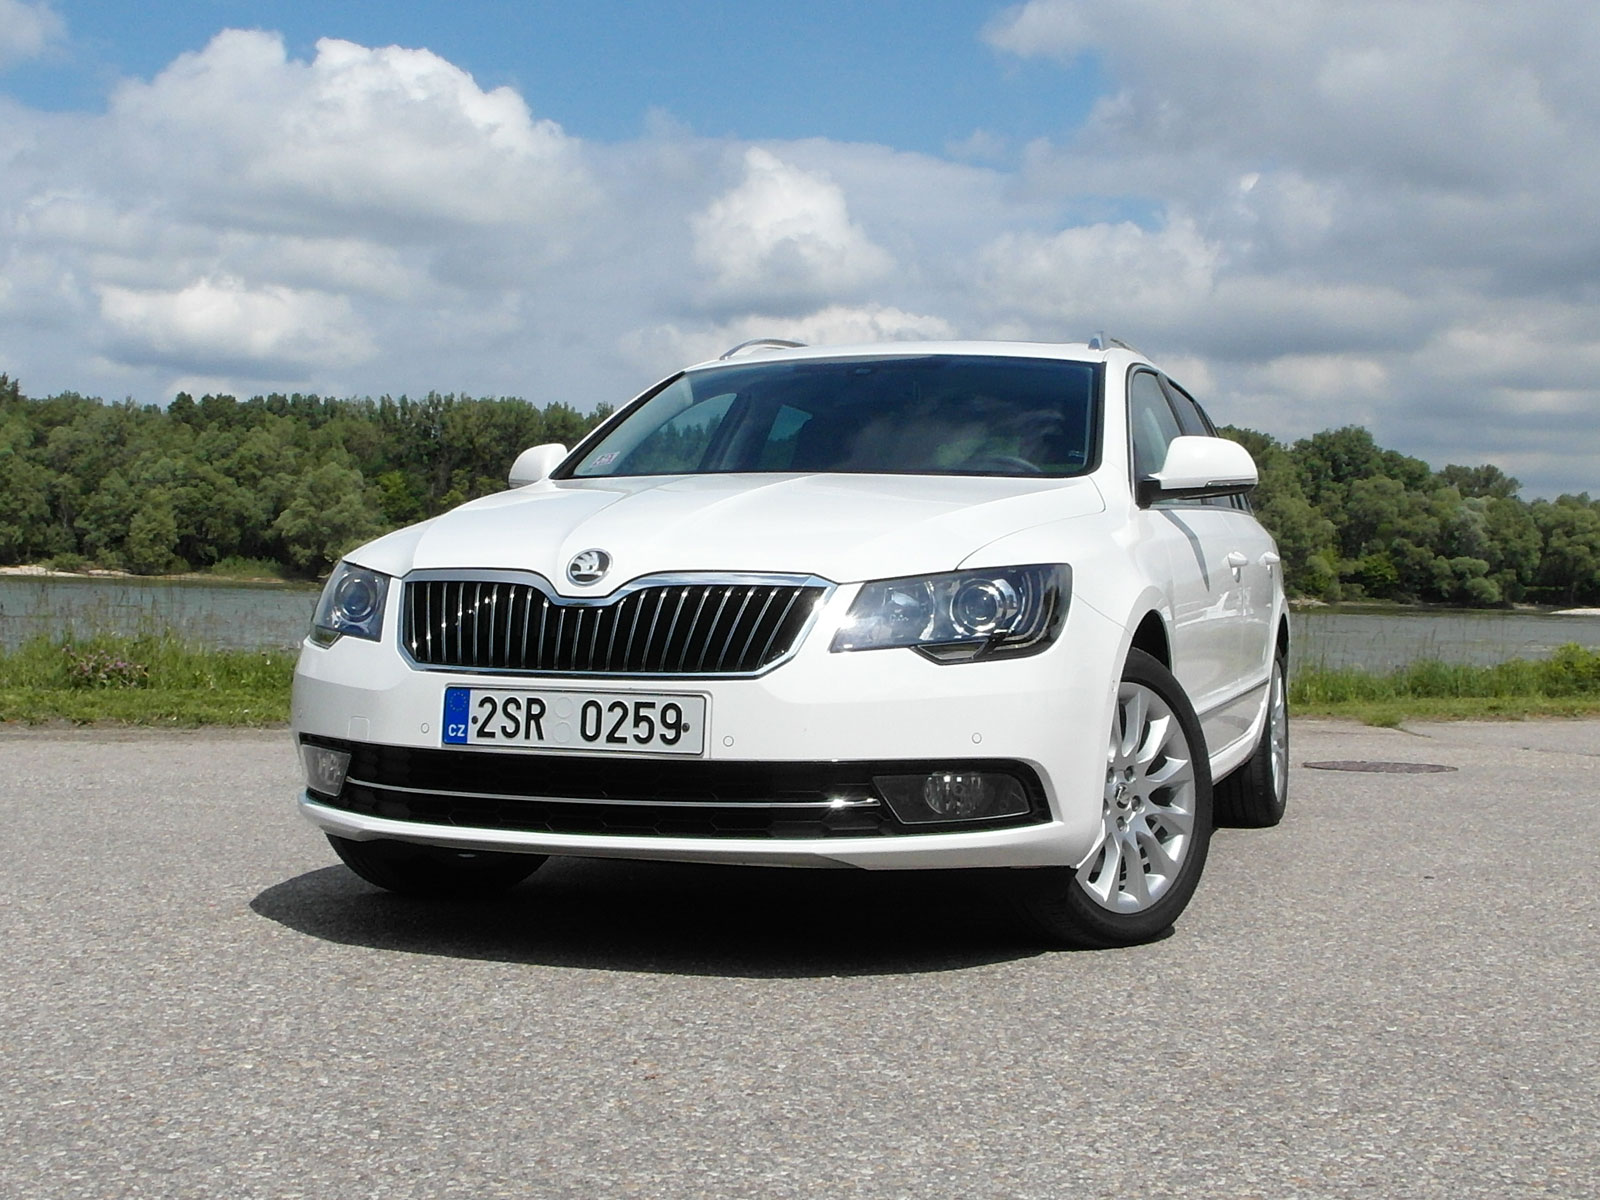 2009 Skoda Superb photo - 2